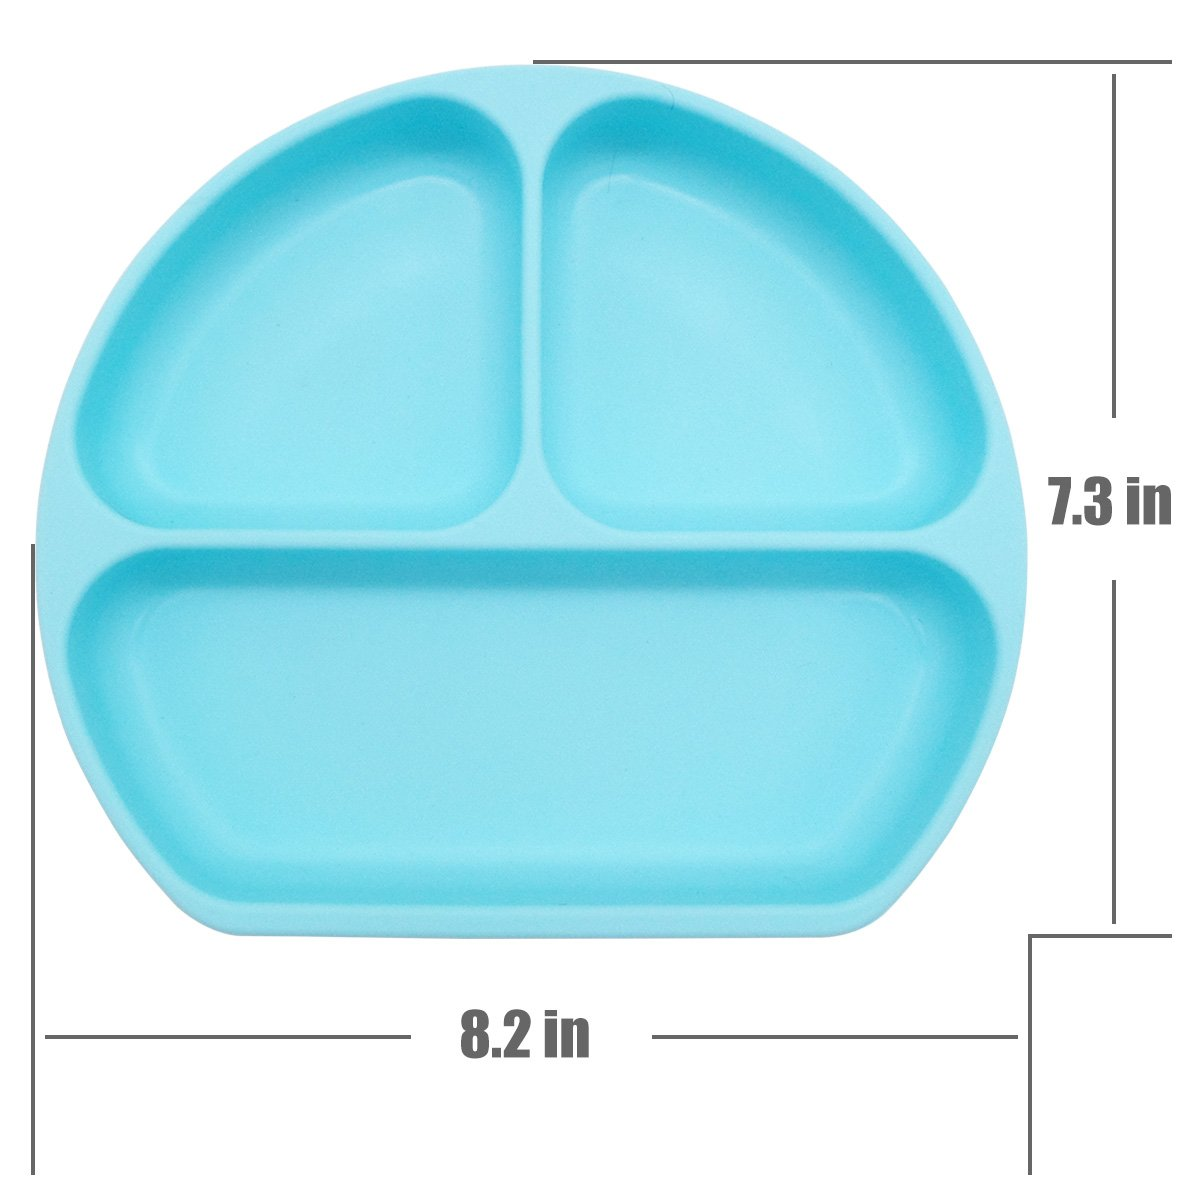 KIDAC Silicone Divided Toddler Anti-skid Suction Plates Dishes Feeding Bowls for Babies Kids (Aqua Blue)